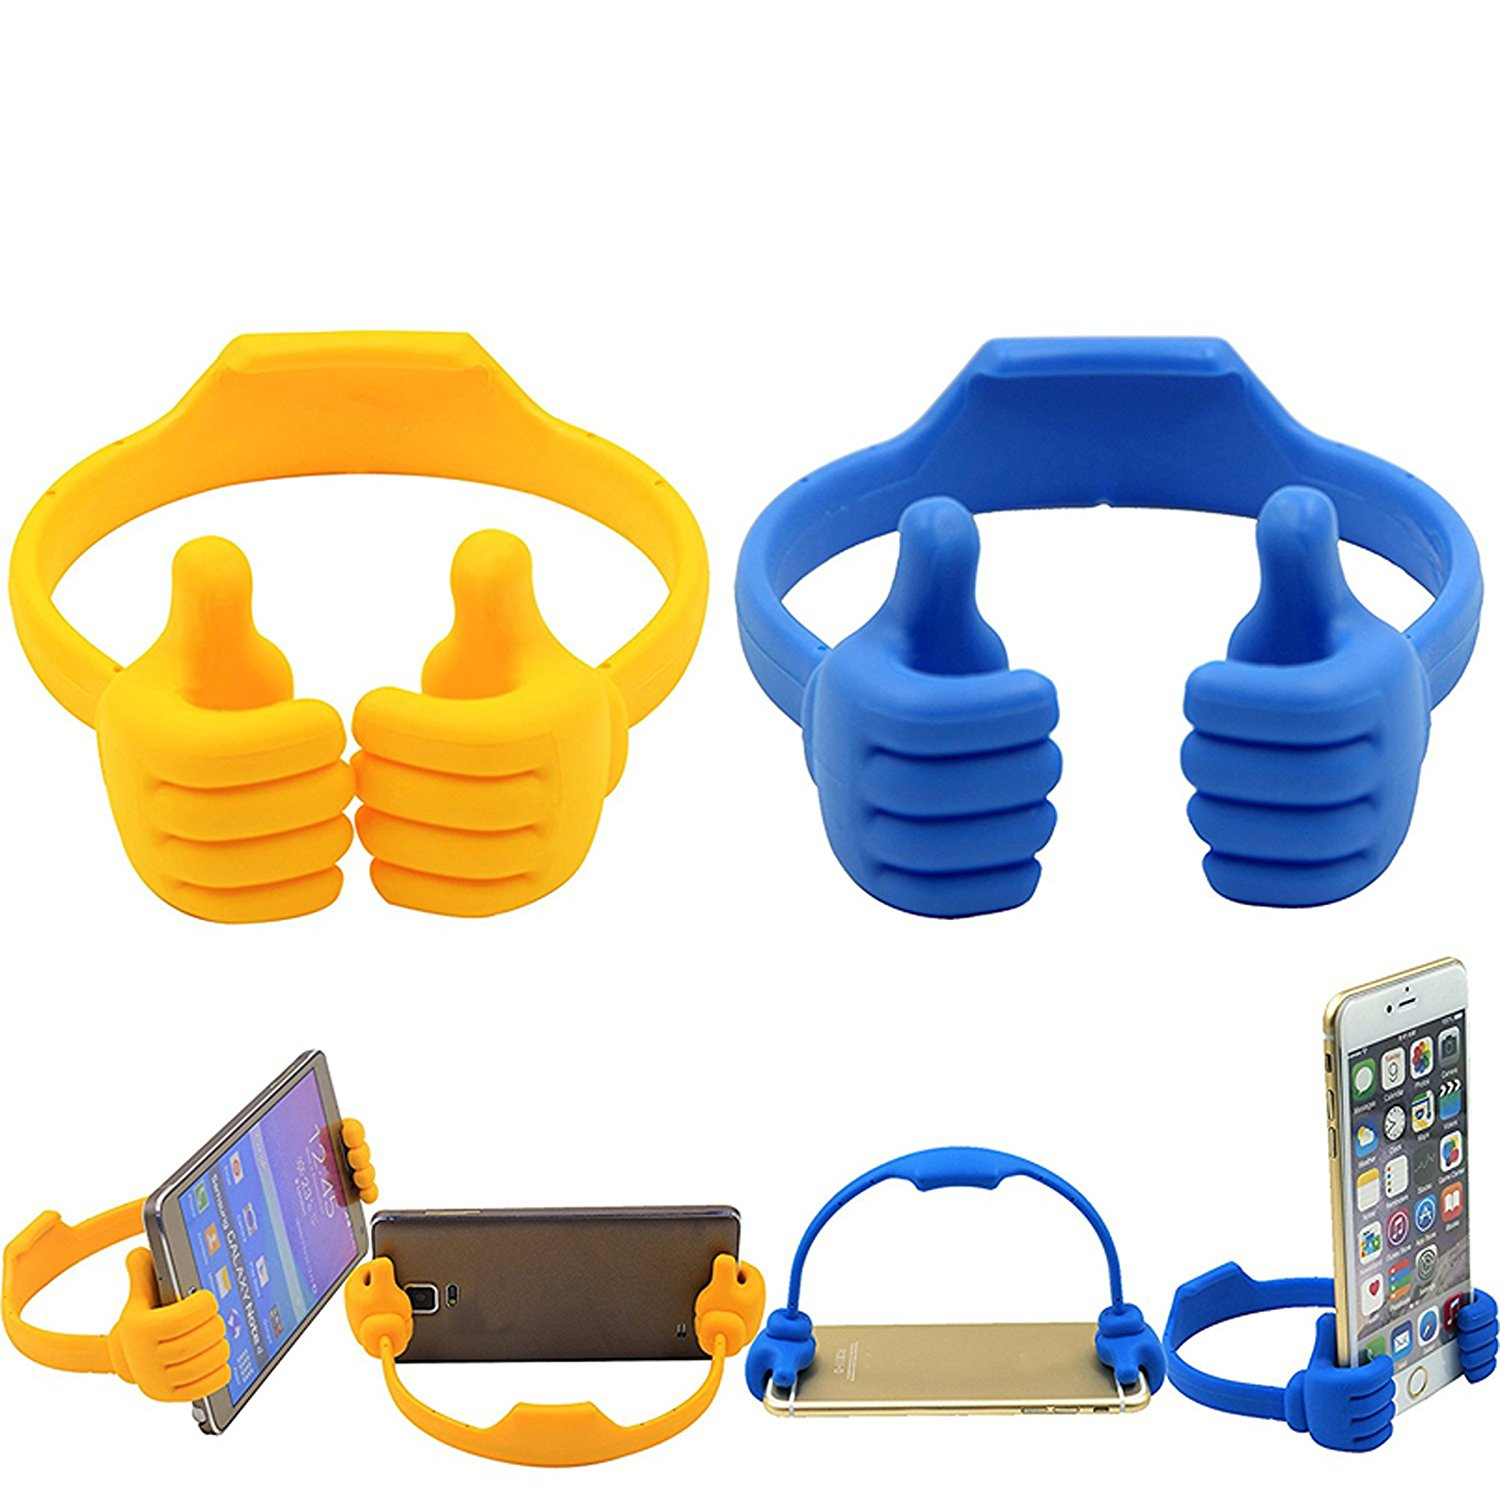 accessories mobile gadgets